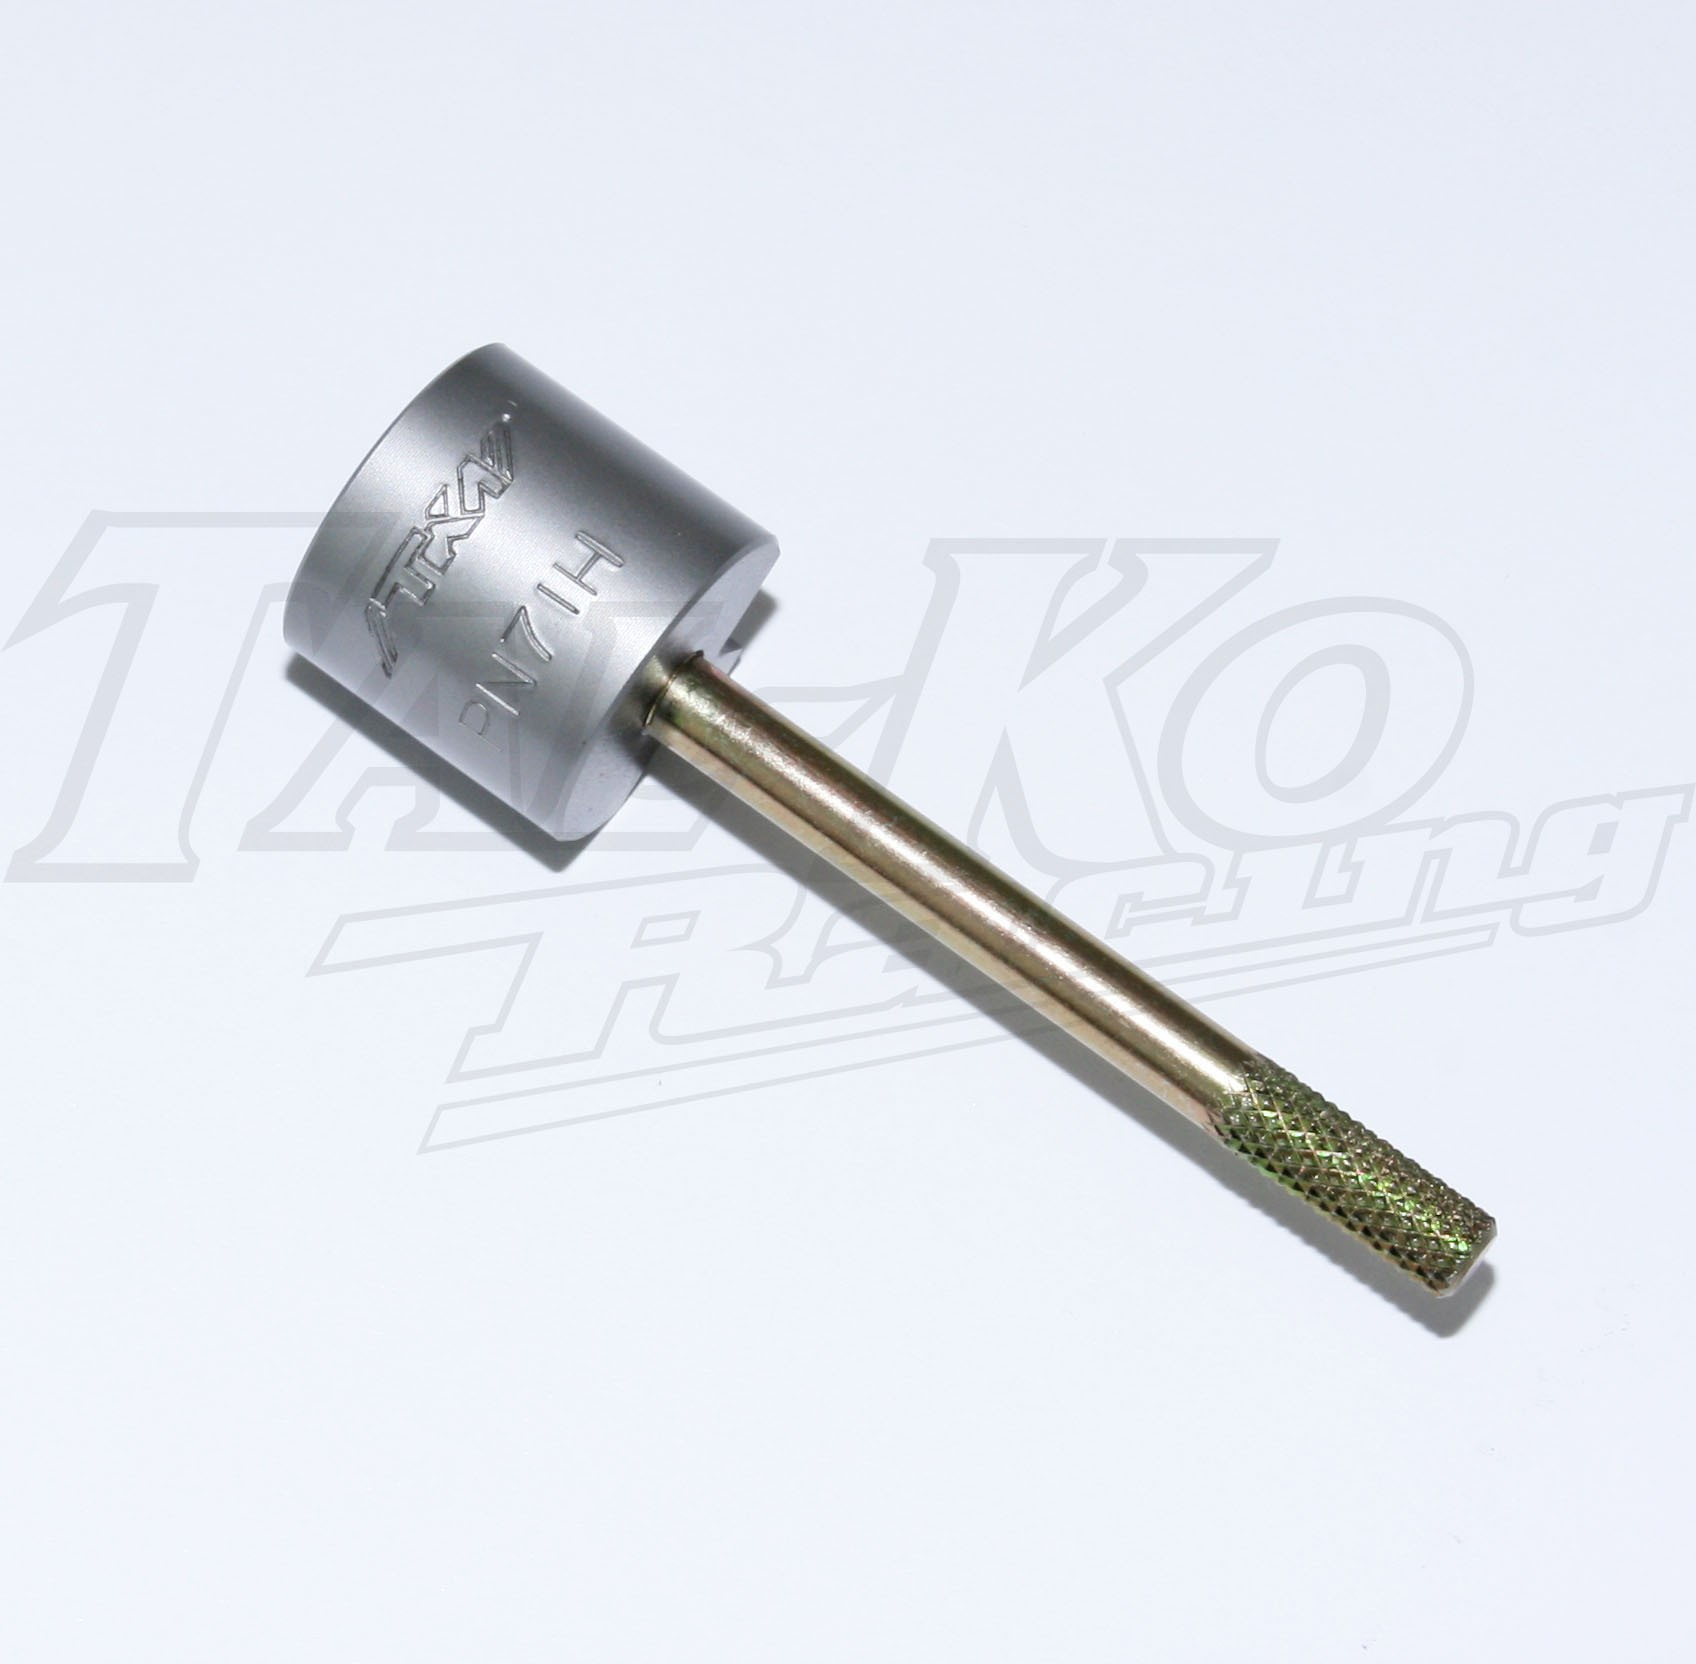 TKM BT82 FICHE CAST INLET PORT HEIGHT GAUGE